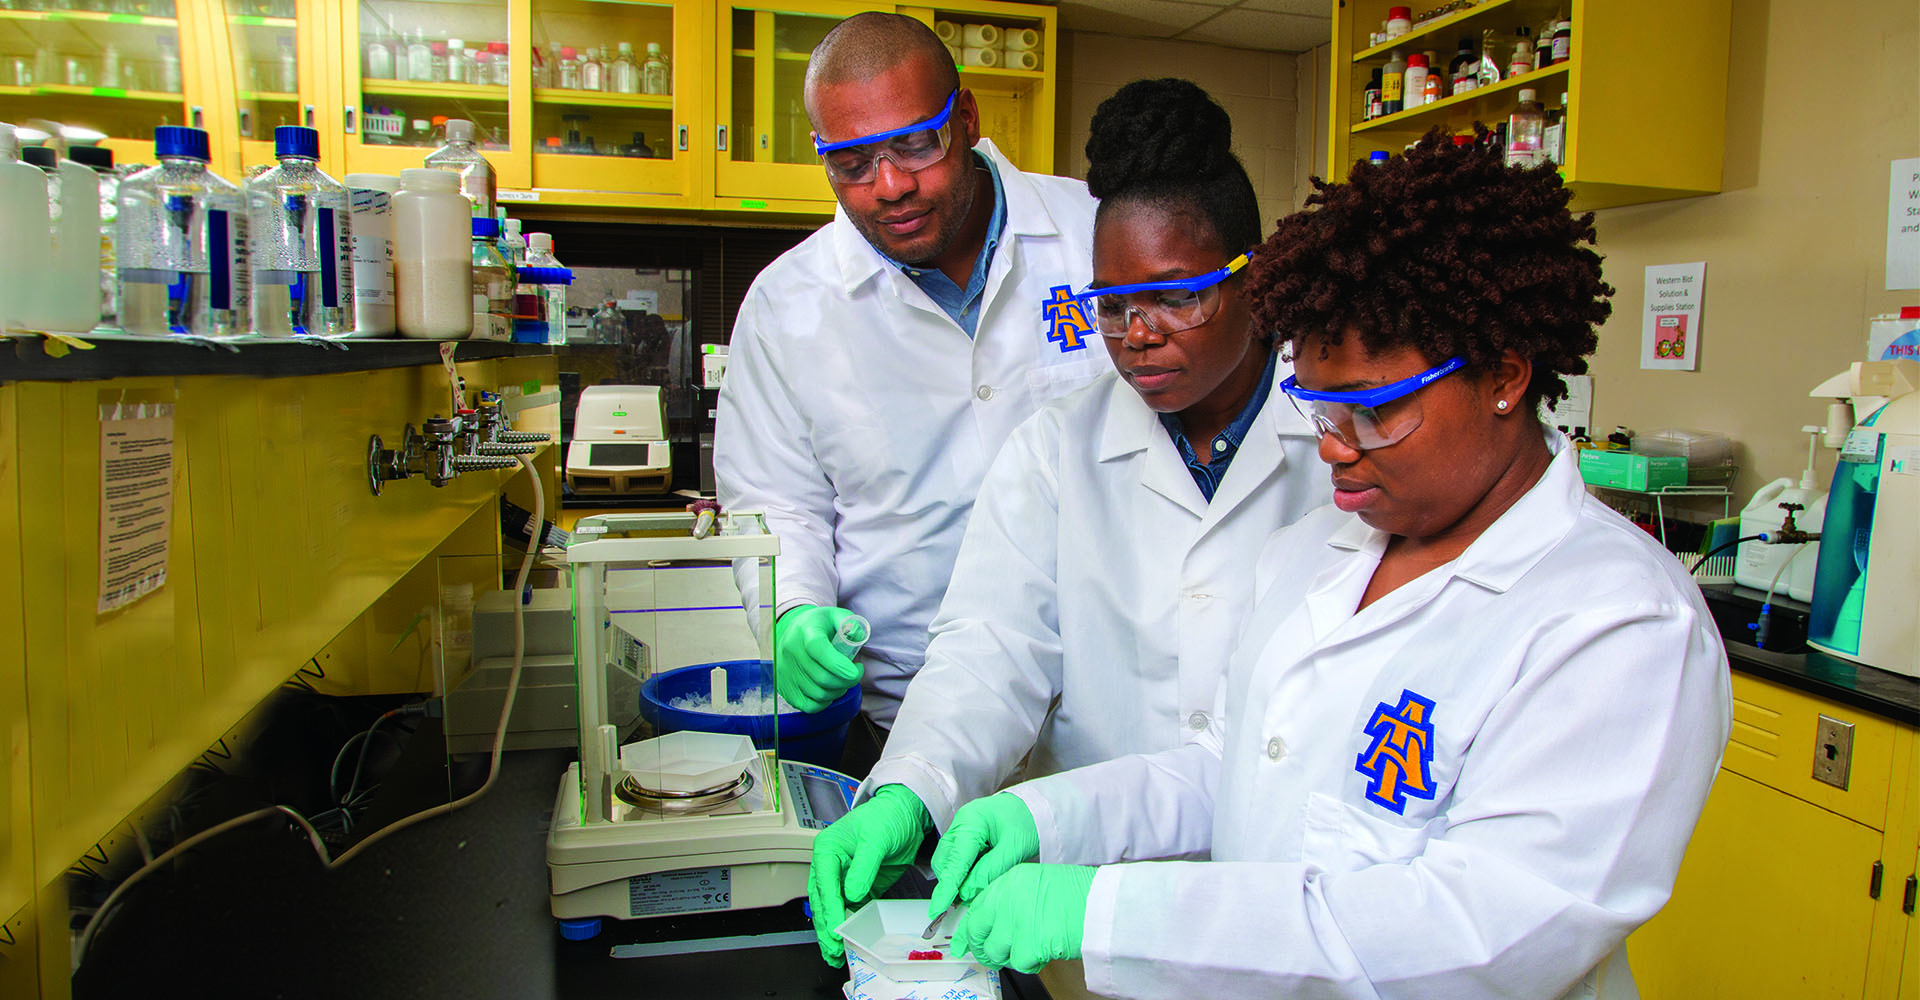 Student scientists working in laboratory